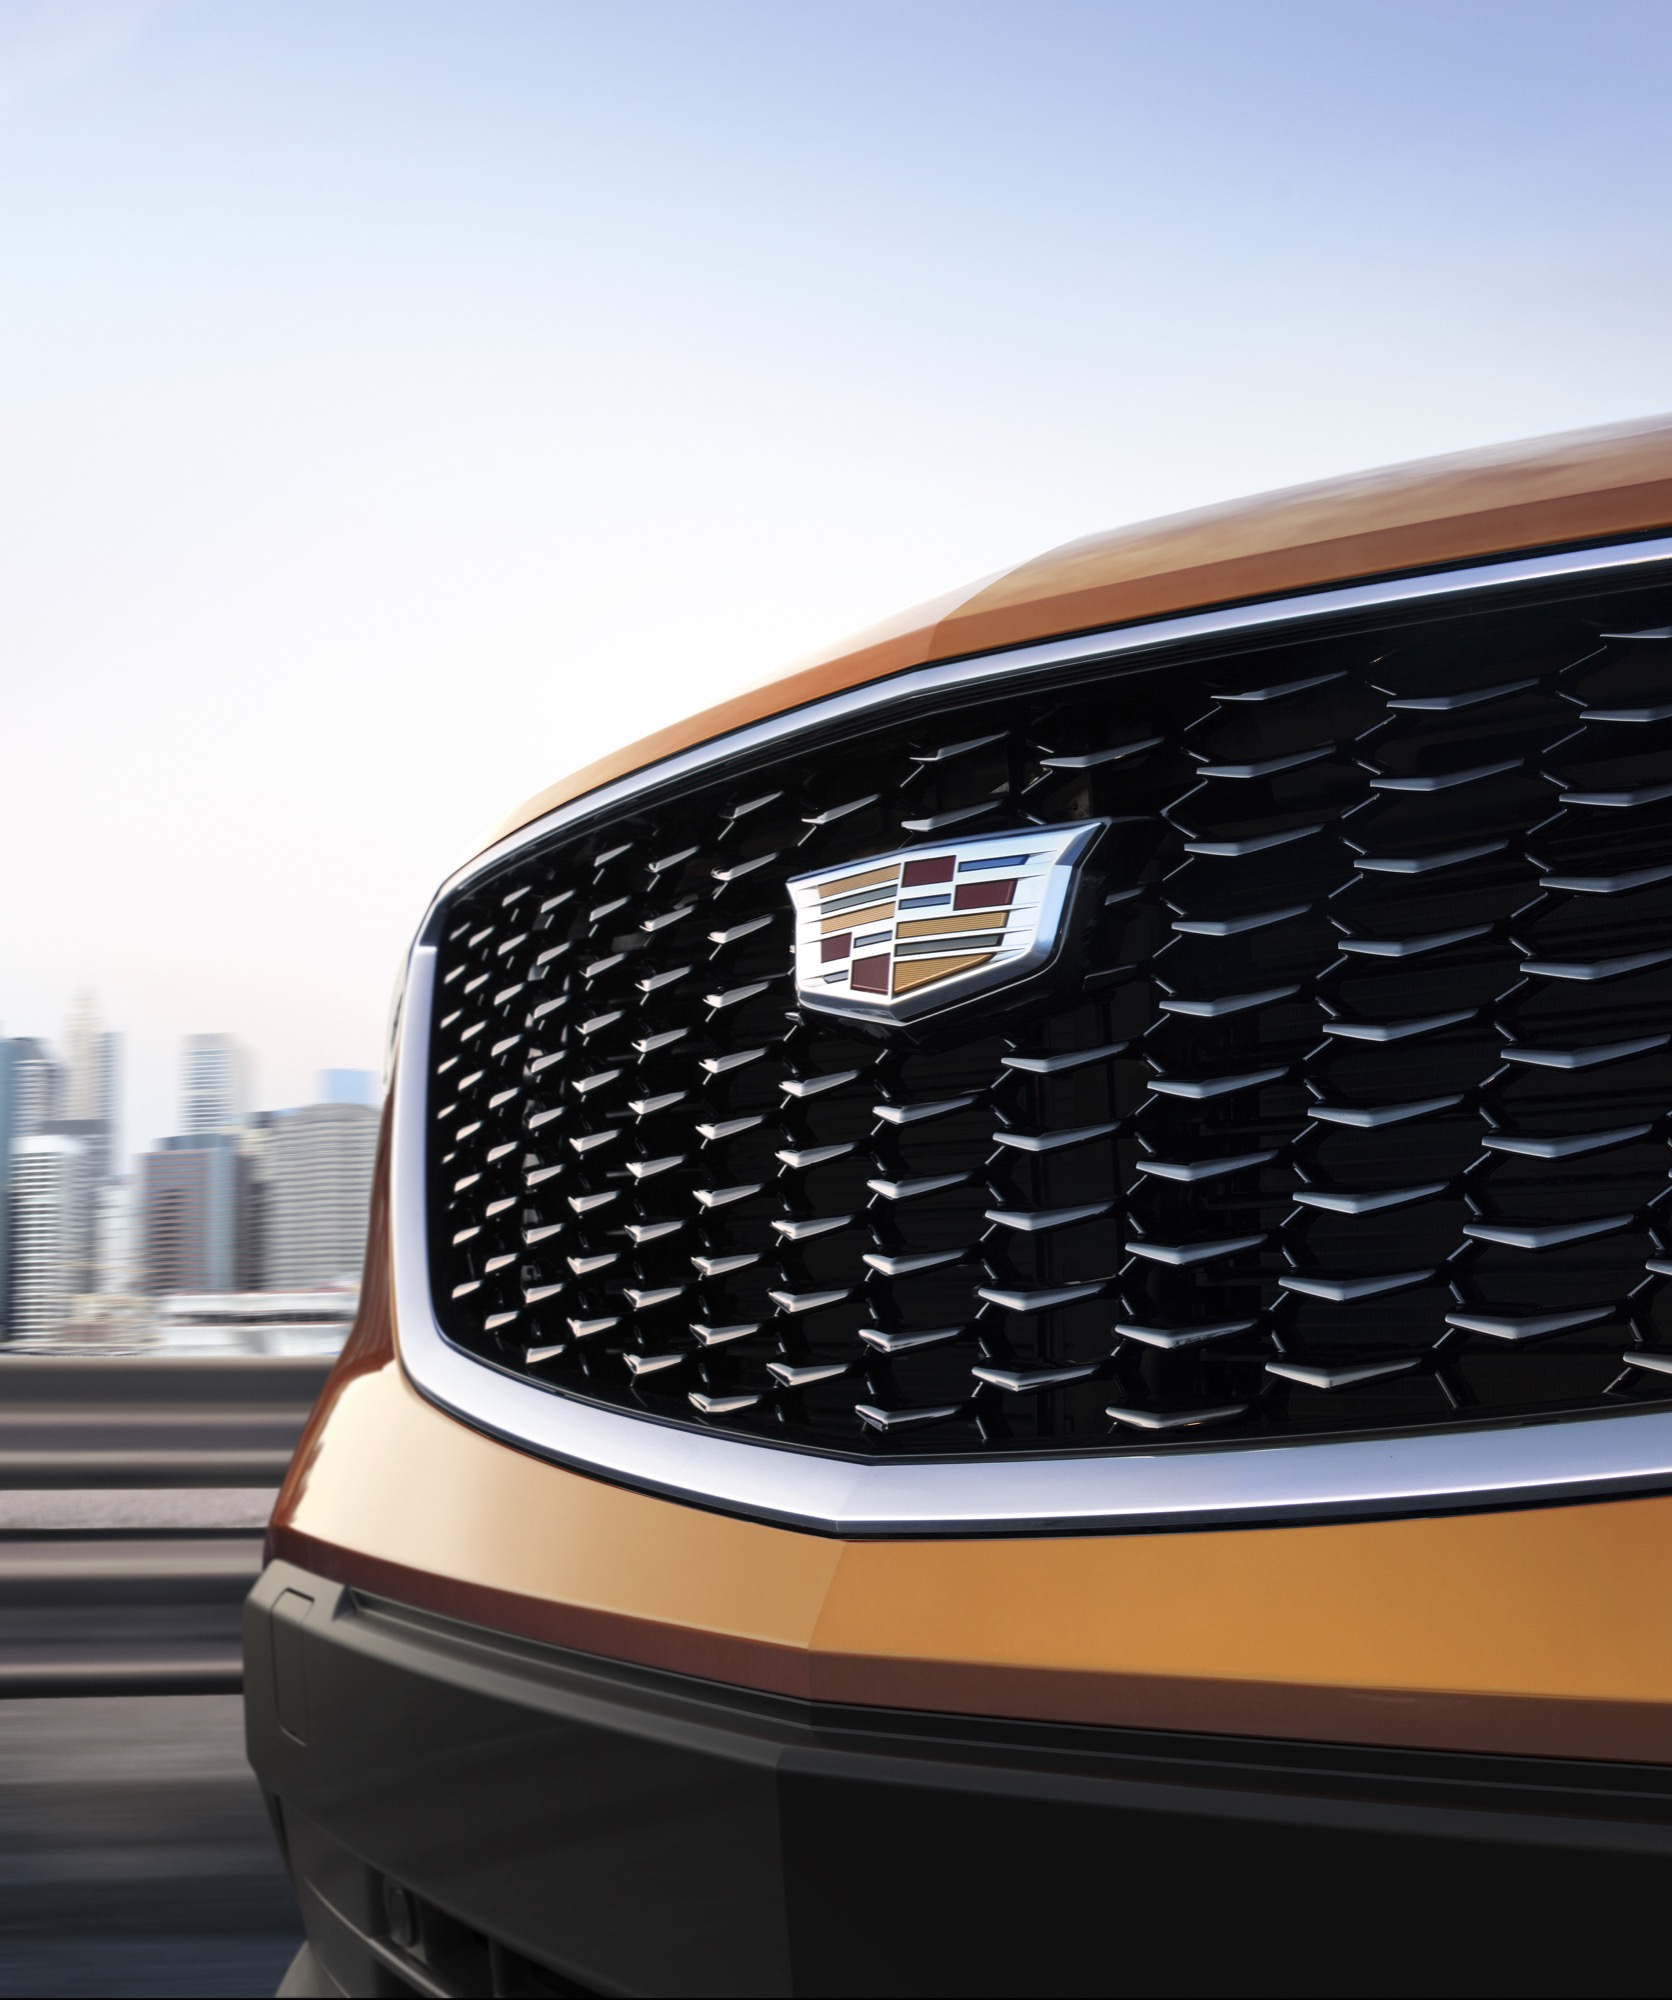 2019 Cadillac XT4 And Its Optional Towing Package: Feature